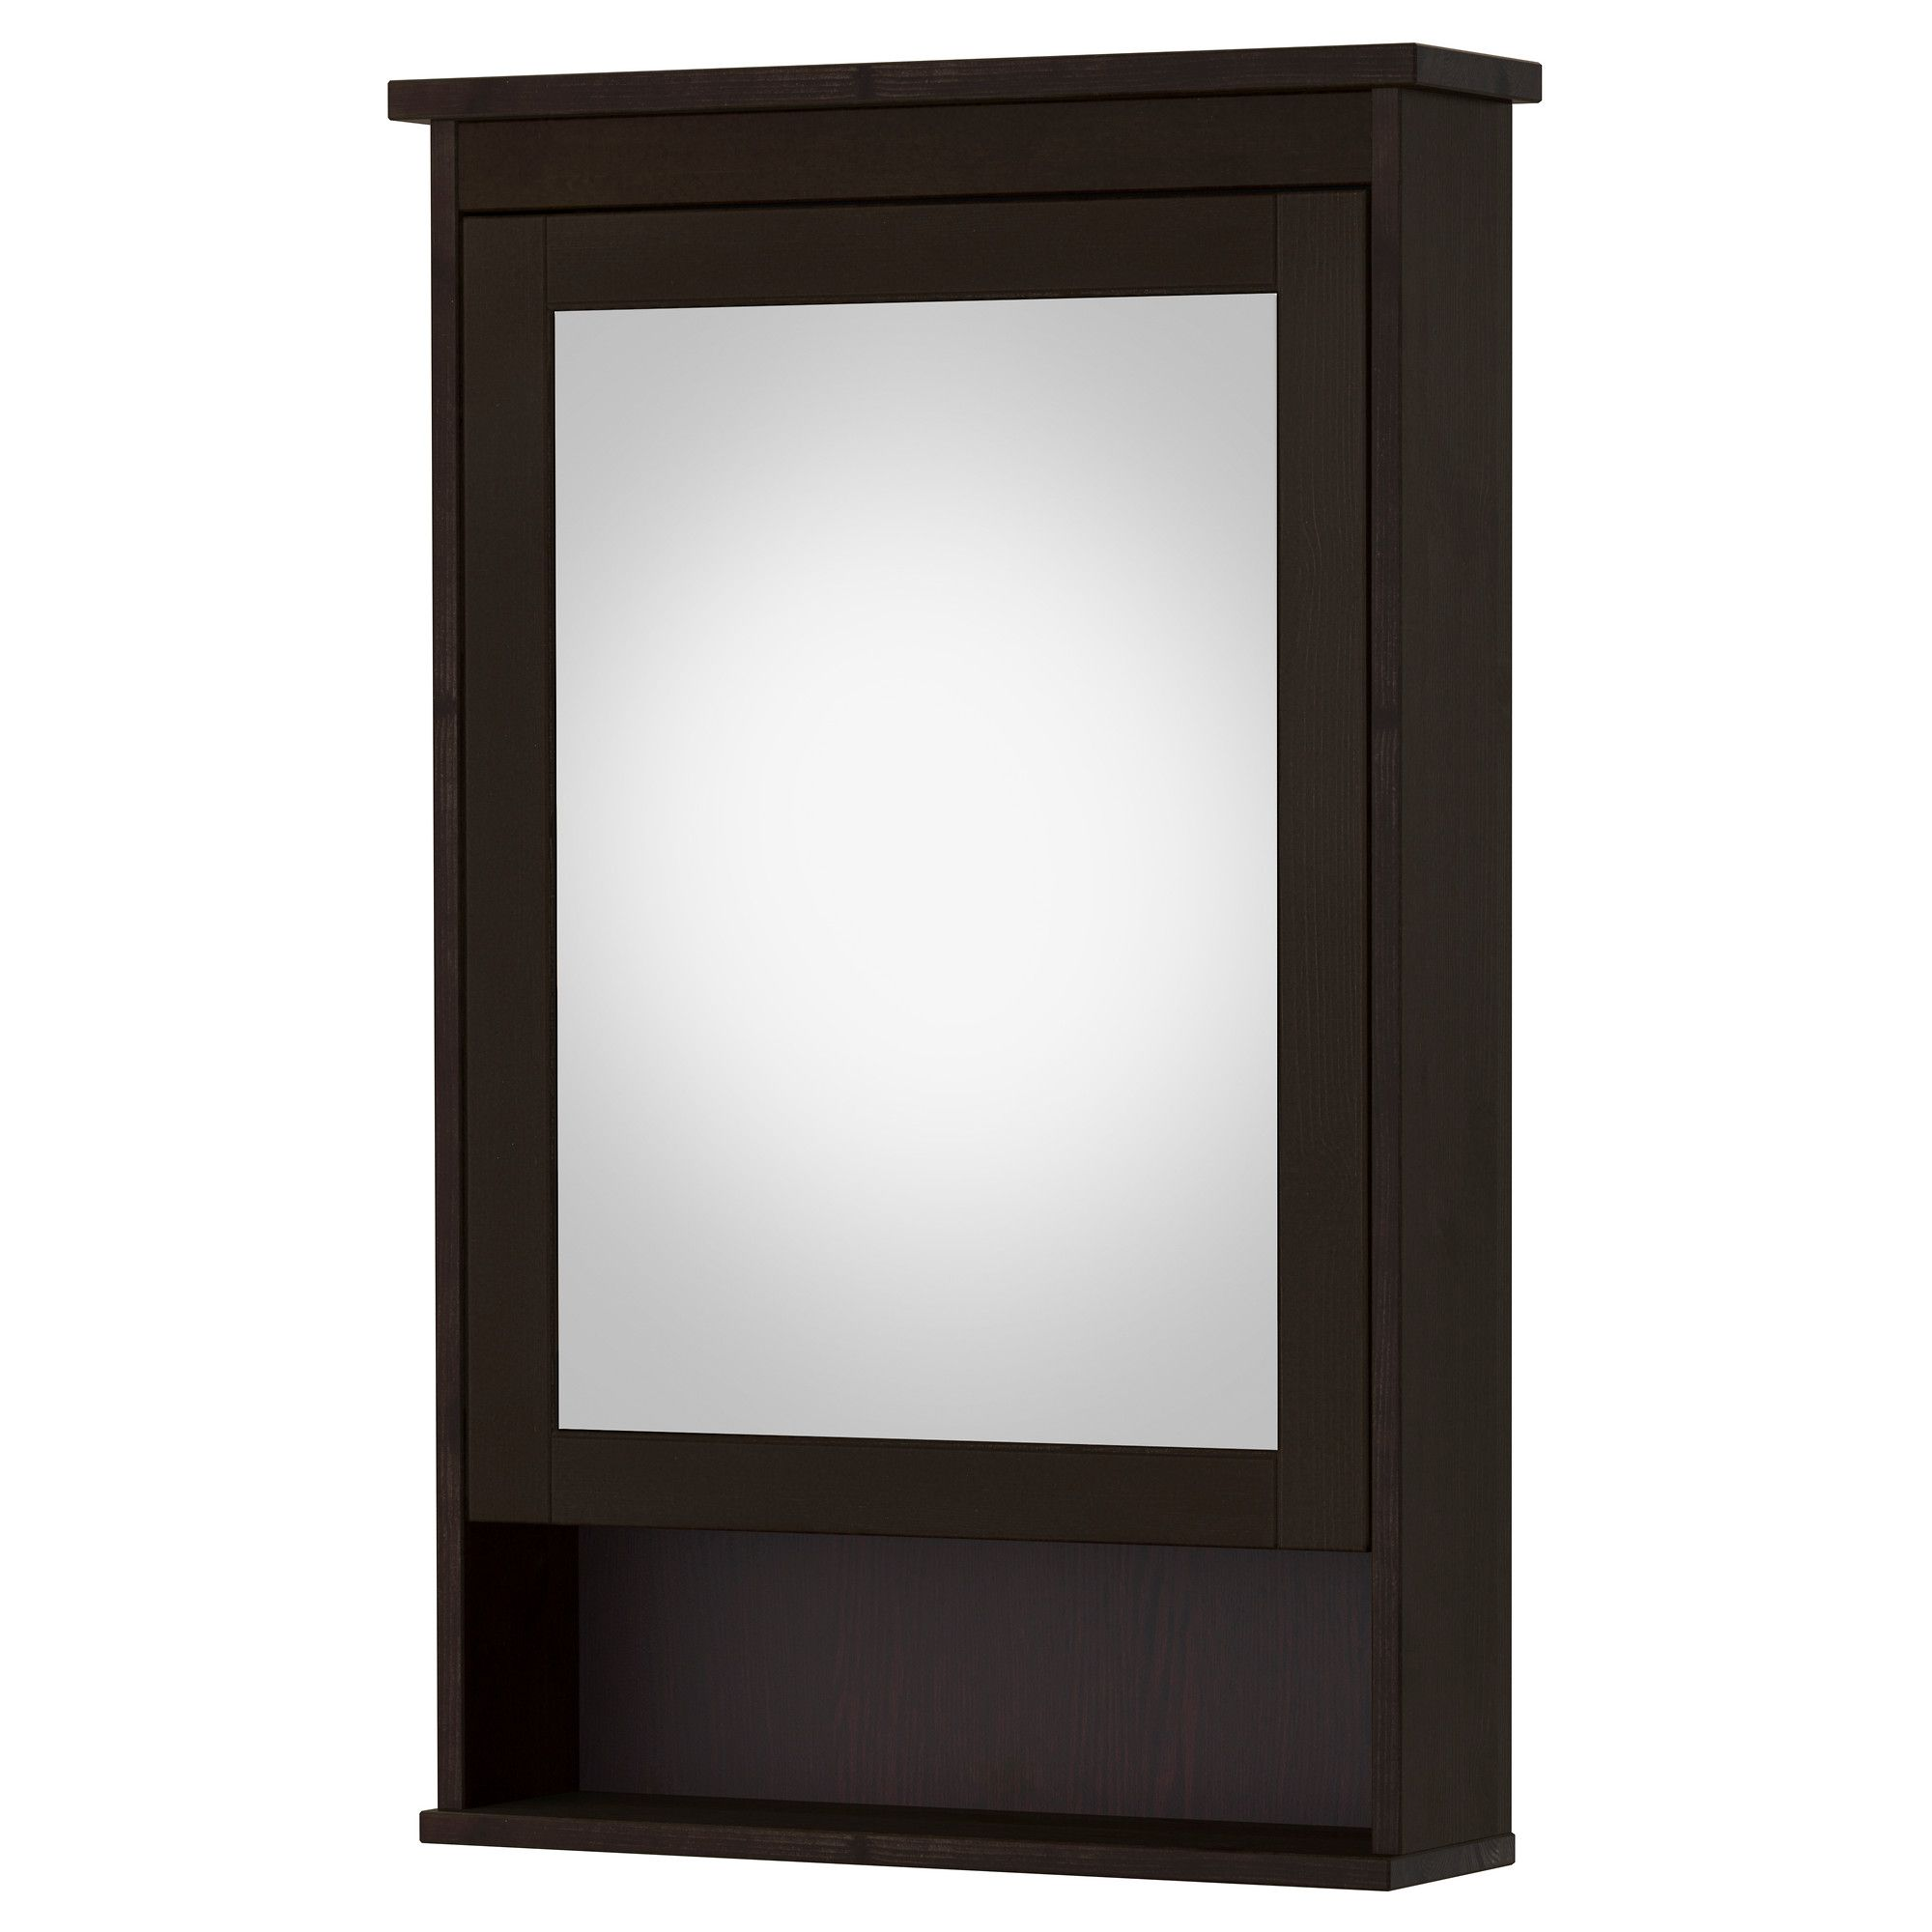 HEMNES Mirror cabinet with 1 door, black-brown stain | HEMNES ...